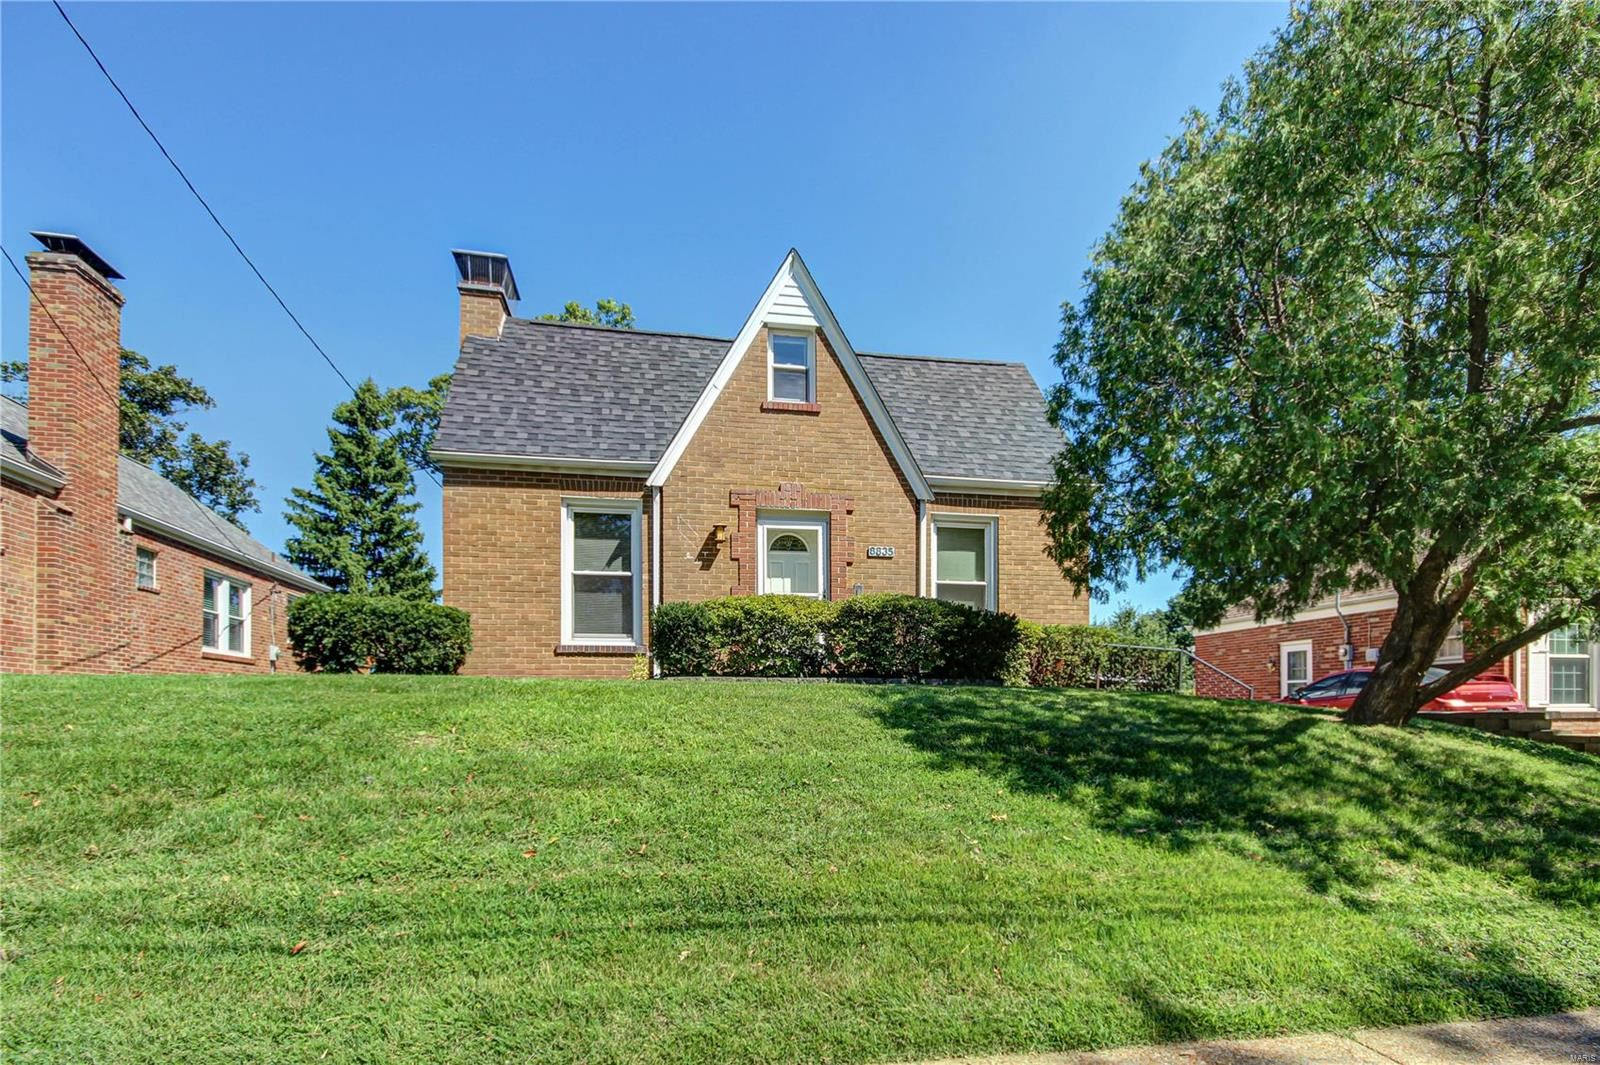 8835 Lawn Avenue, Brentwood, MO 63144 - MLS#: 20058812